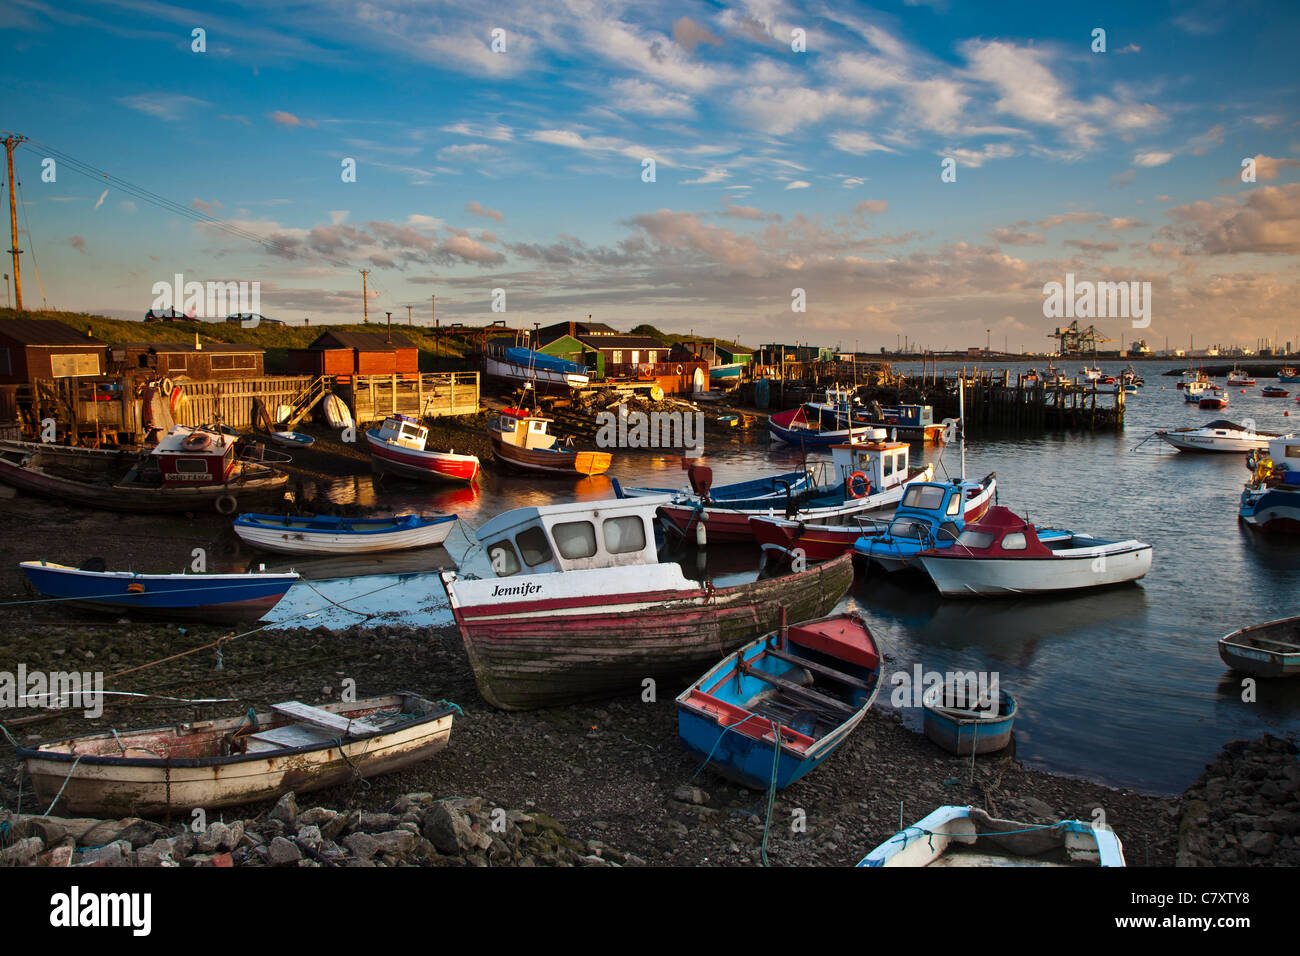 Paddys Hole fishermans harbour, South Gare, Redcar, Caleveland - Stock Image